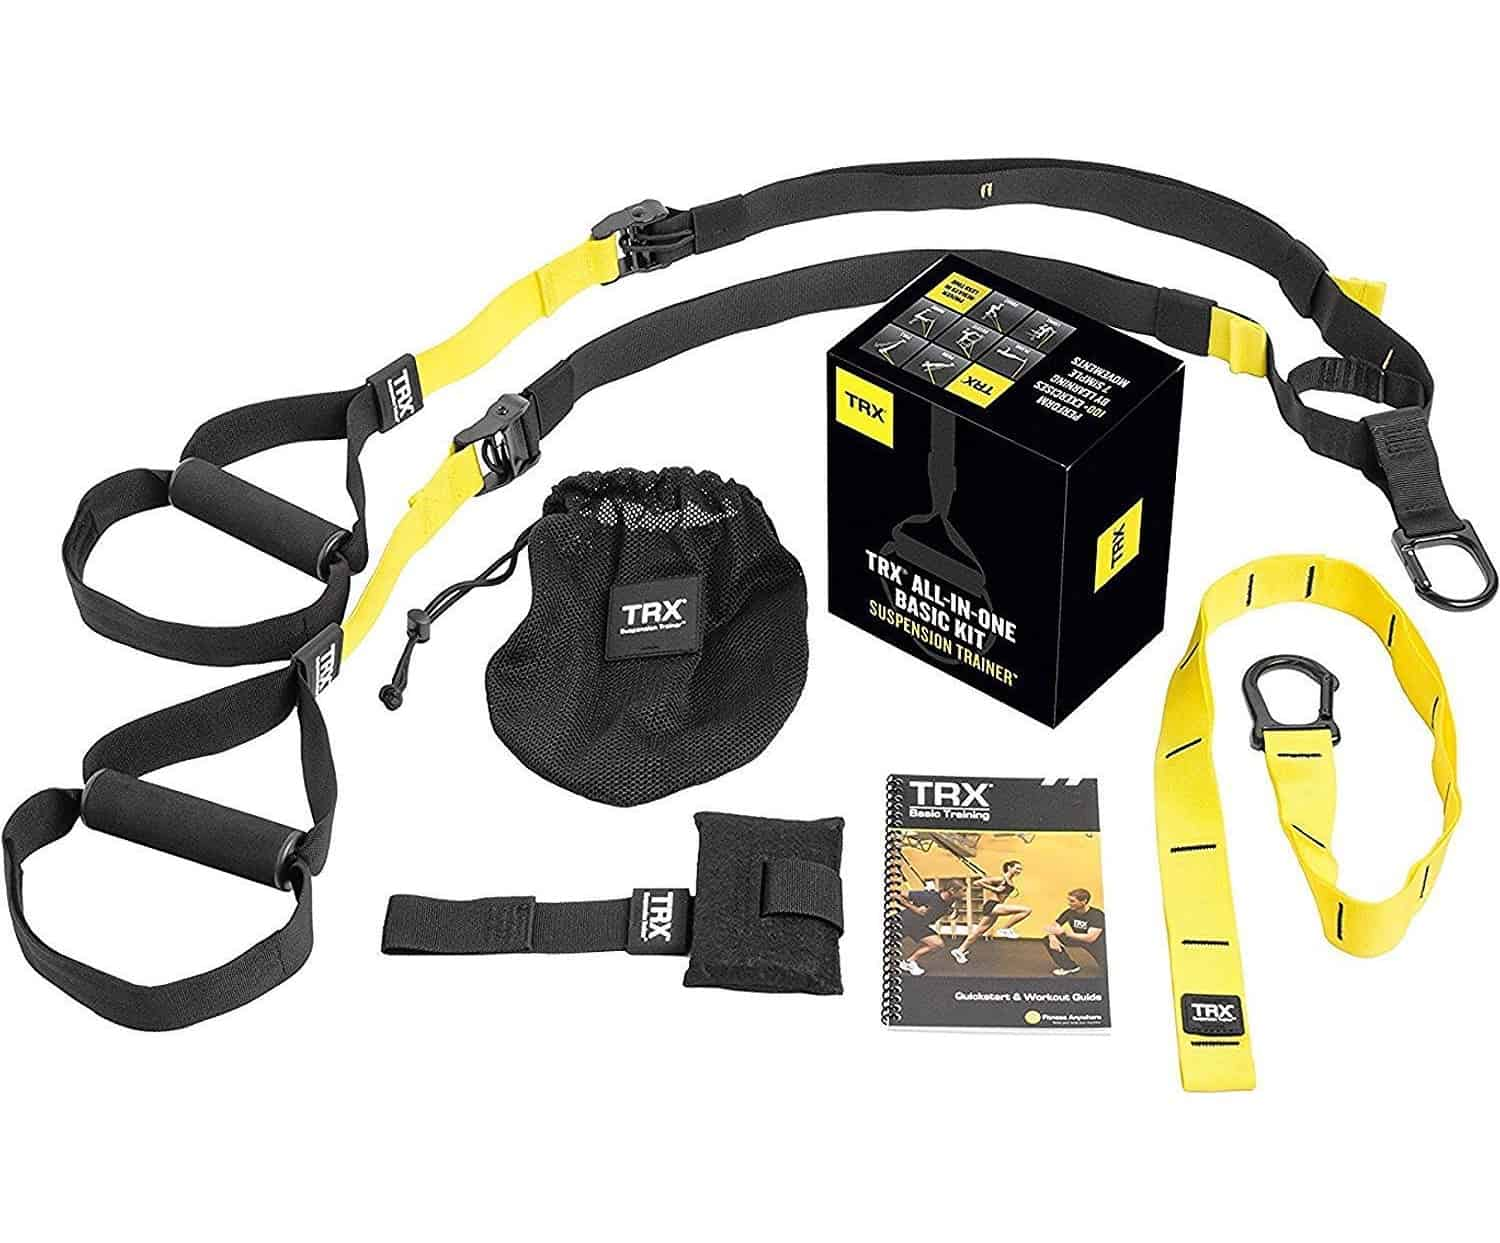 Full kit of the trx all-in-one suspension trainer